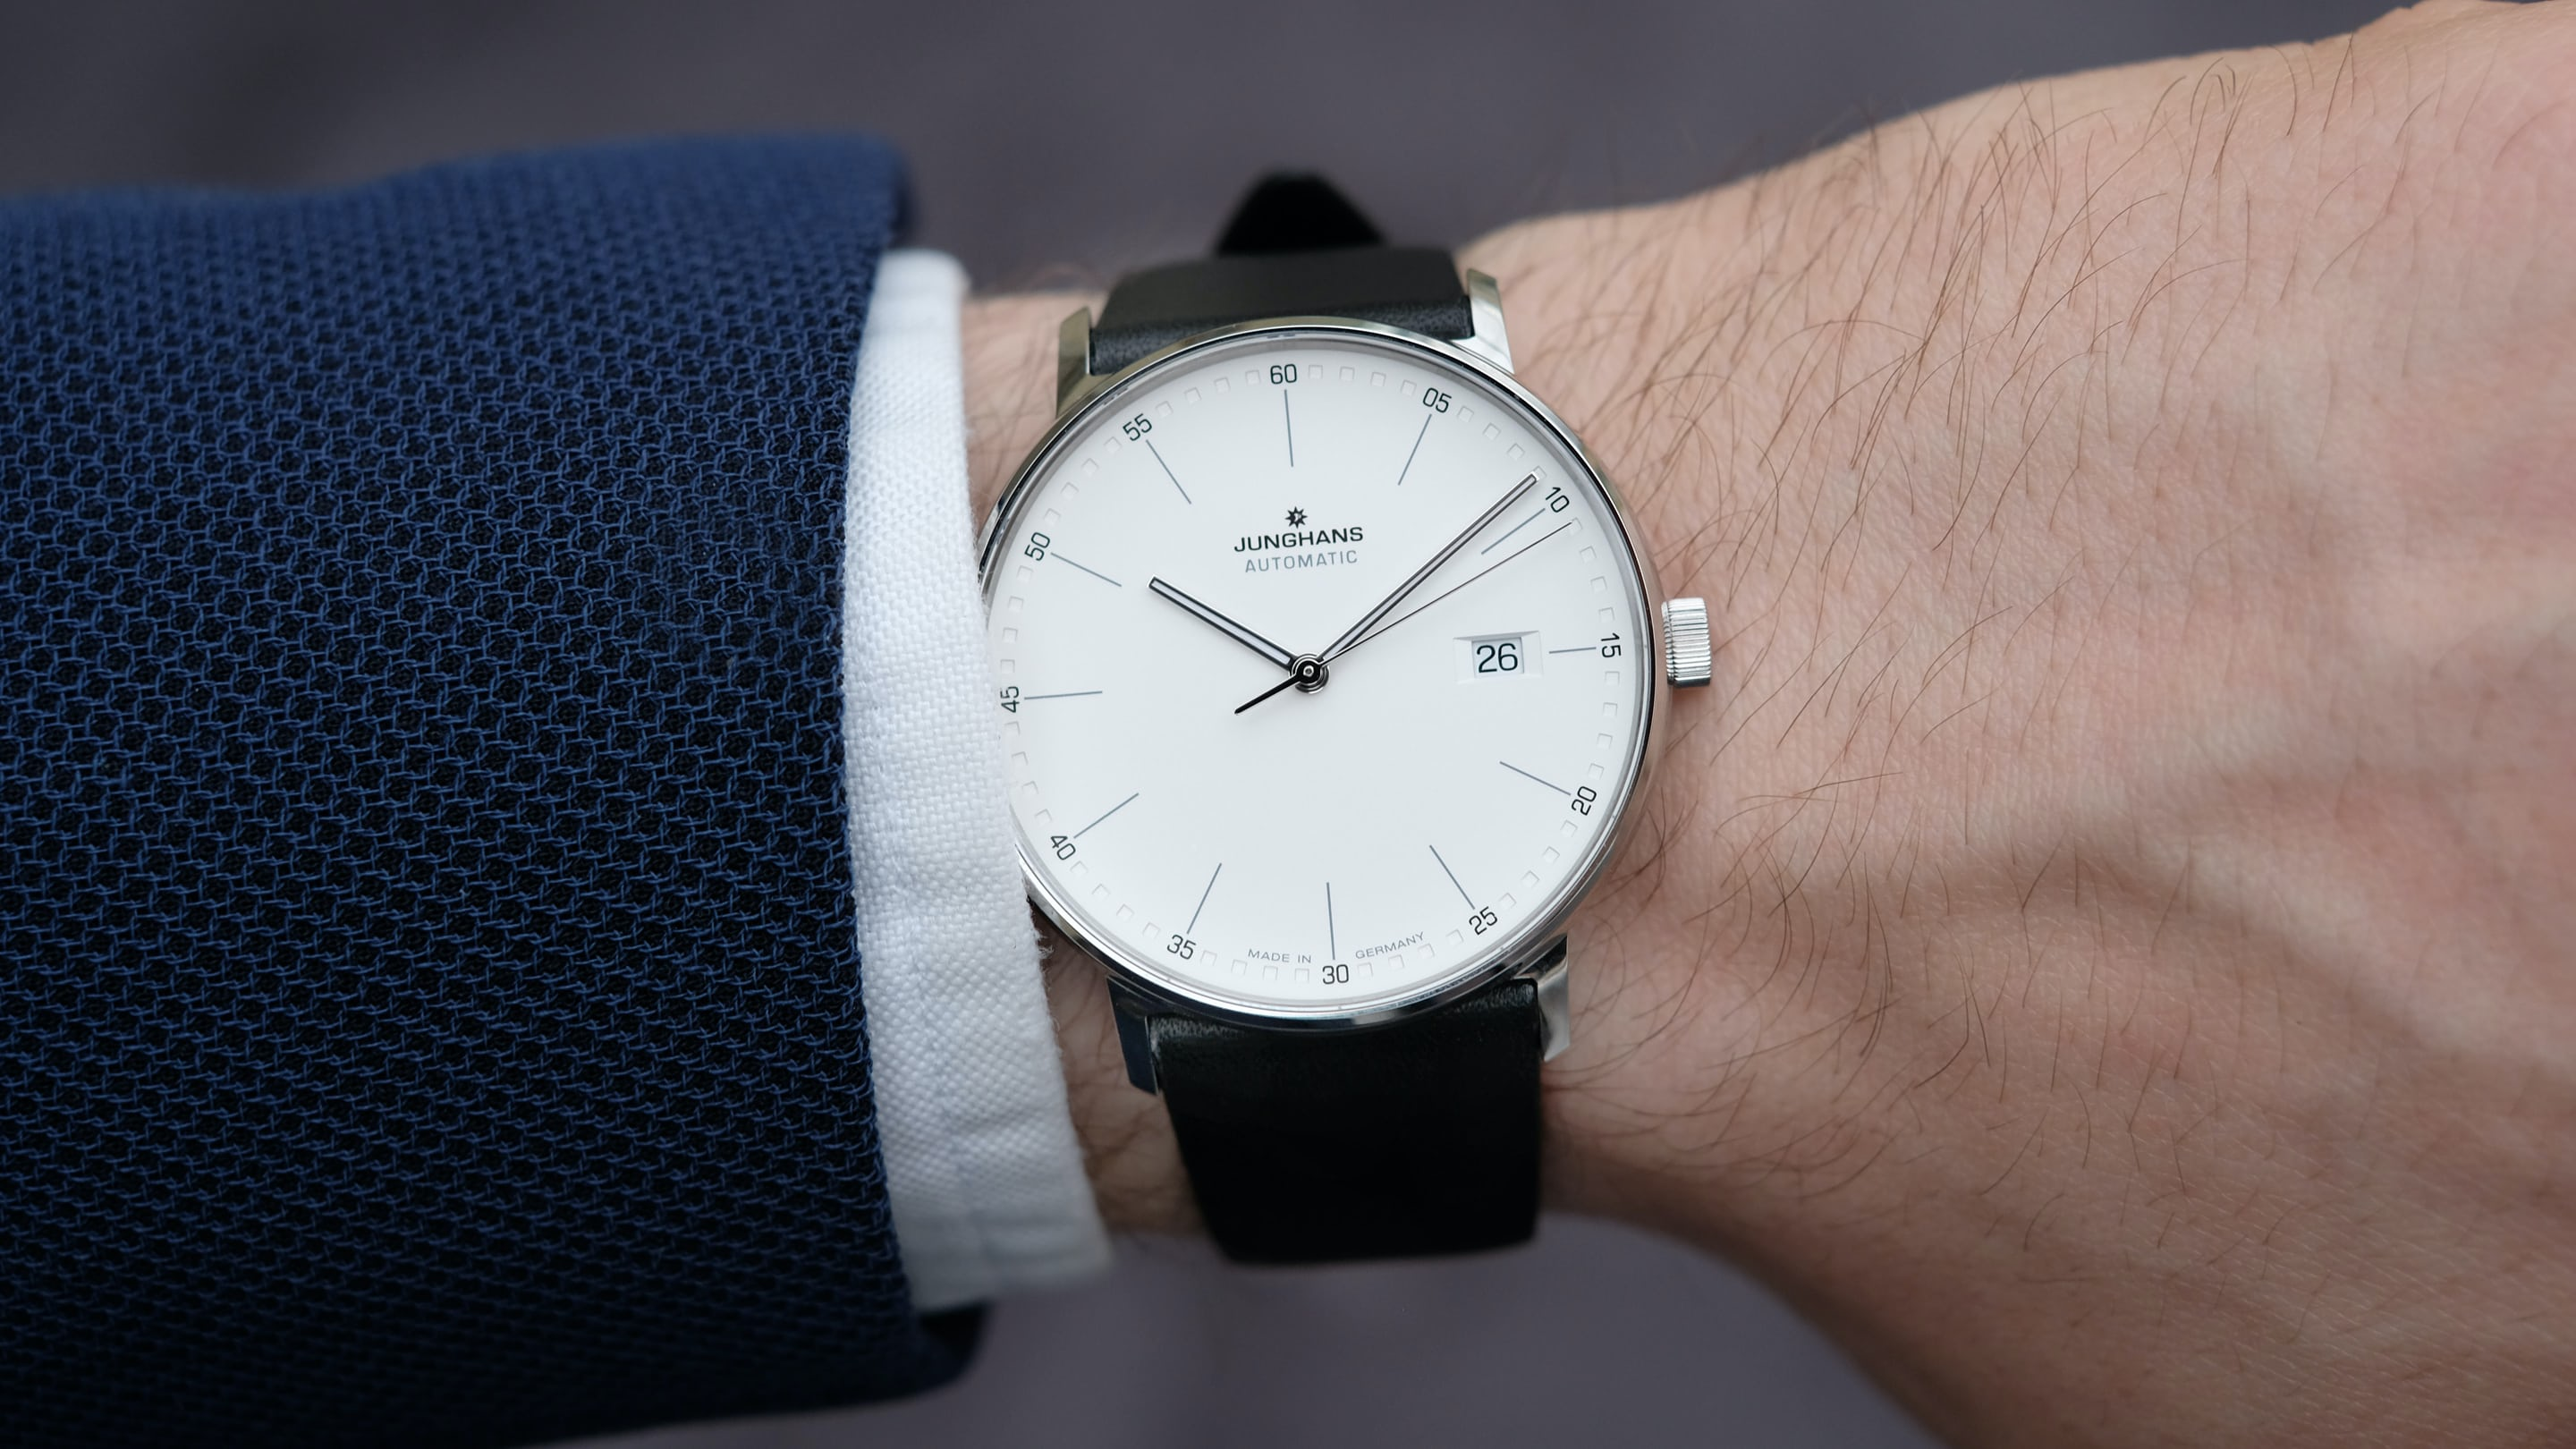 watches bauhaus tangente neomatik style champagner worthy made switzerland men eight s not lust journal in nomos